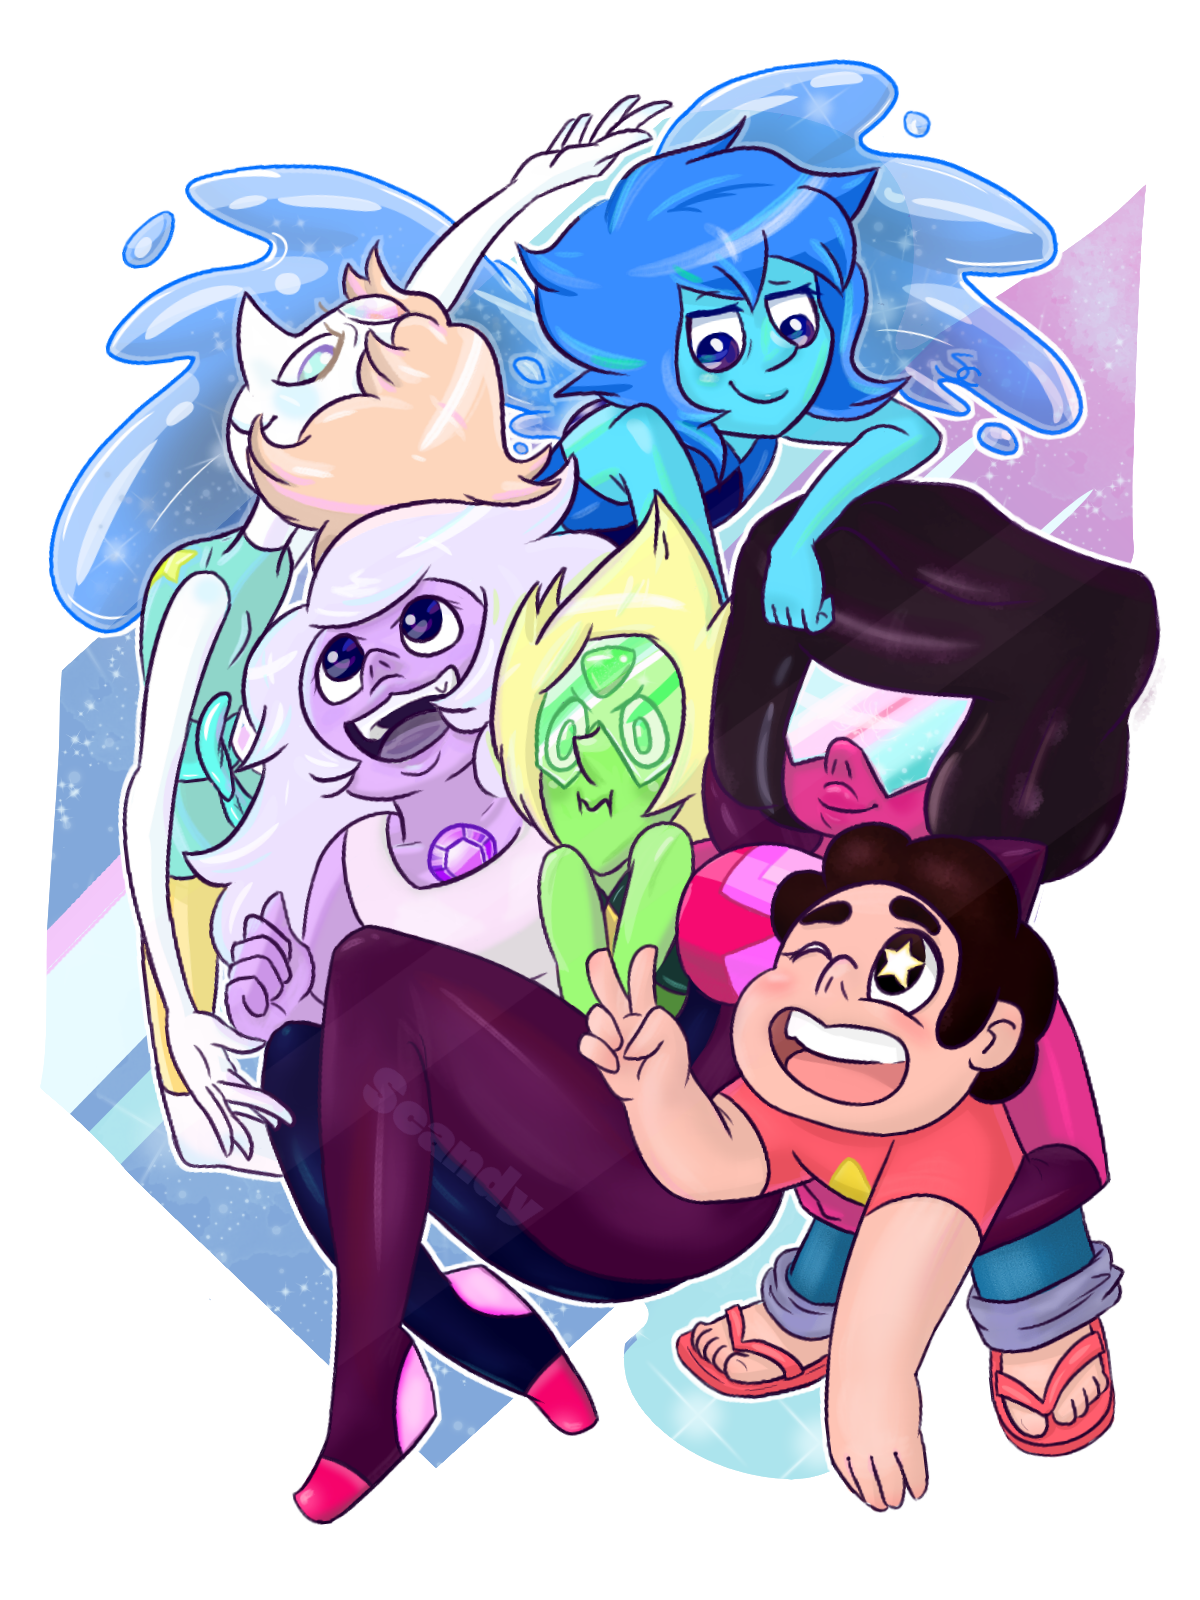 WE ARE THE CRYSTAL GEMS °˖✧◝(⁰▿⁰)◜✧˖°